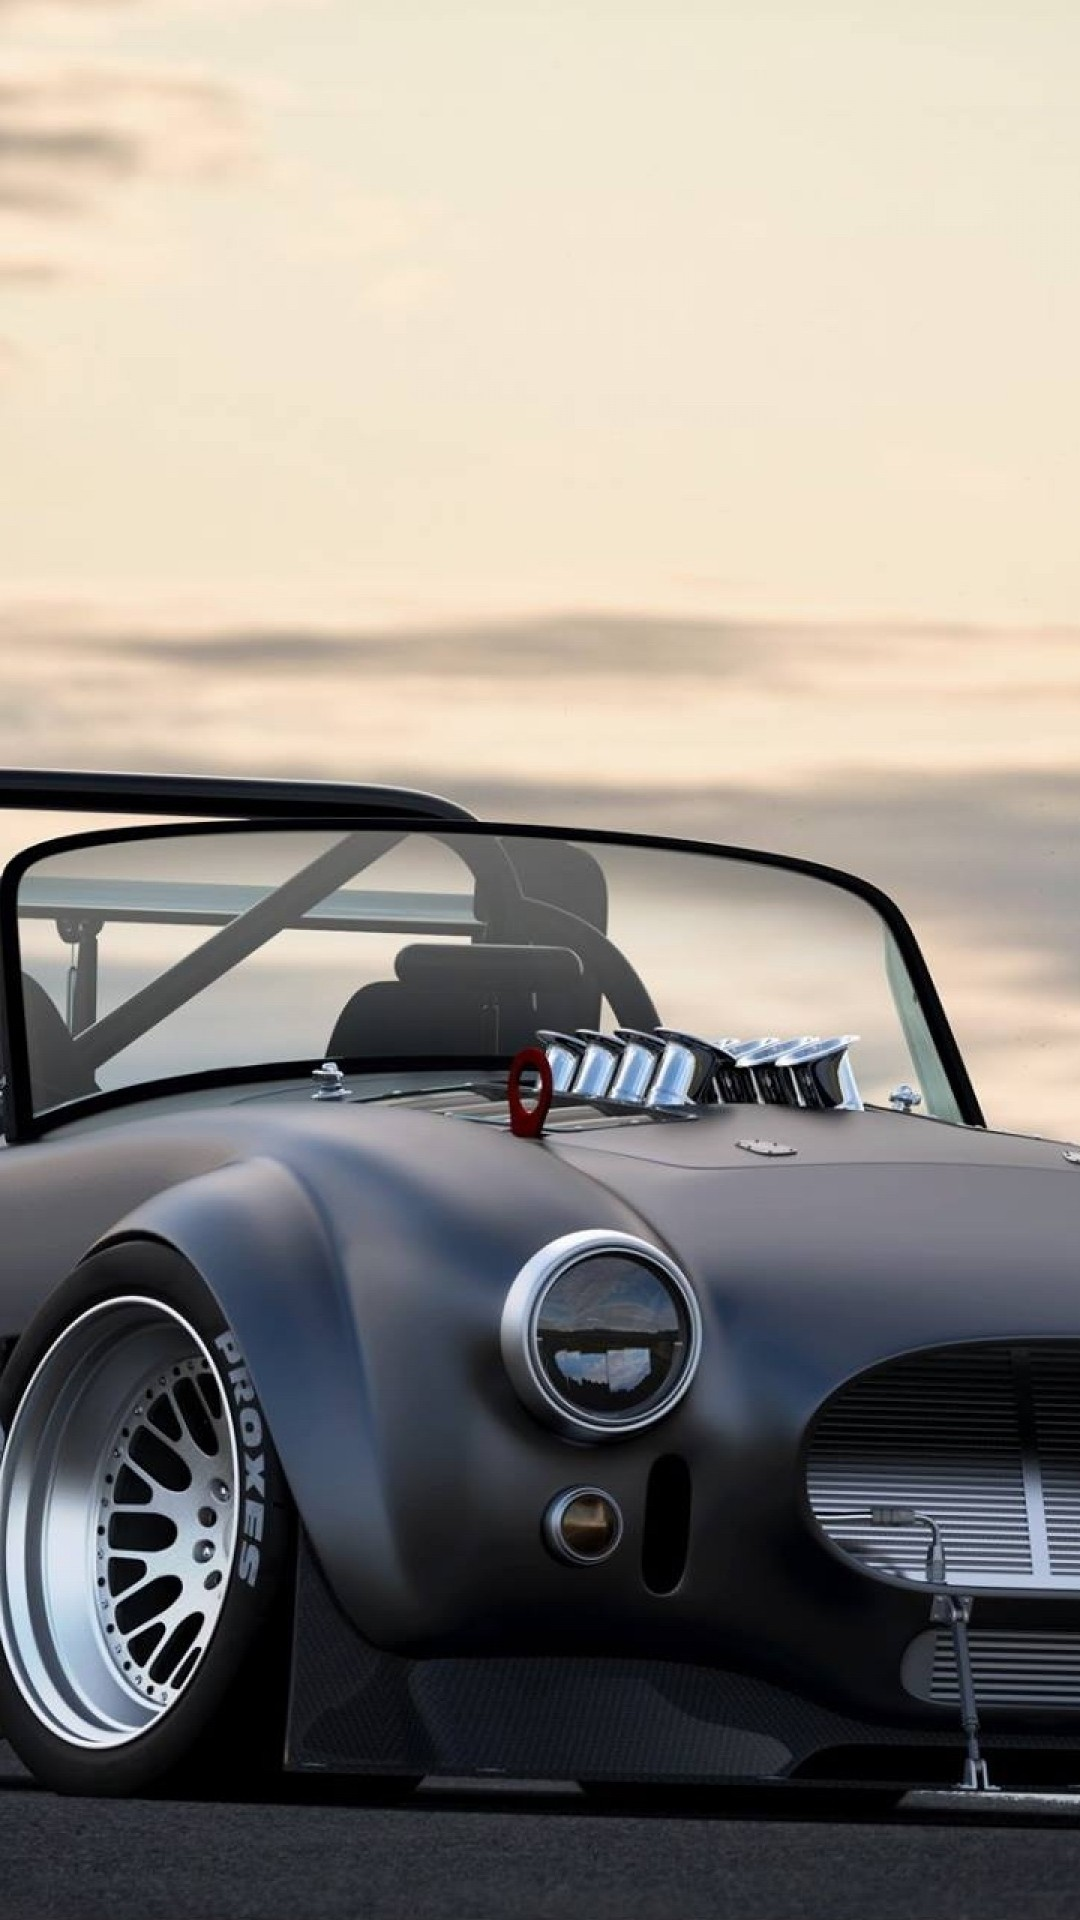 Wallpaper shelby, cobra, tuning, cars, wing